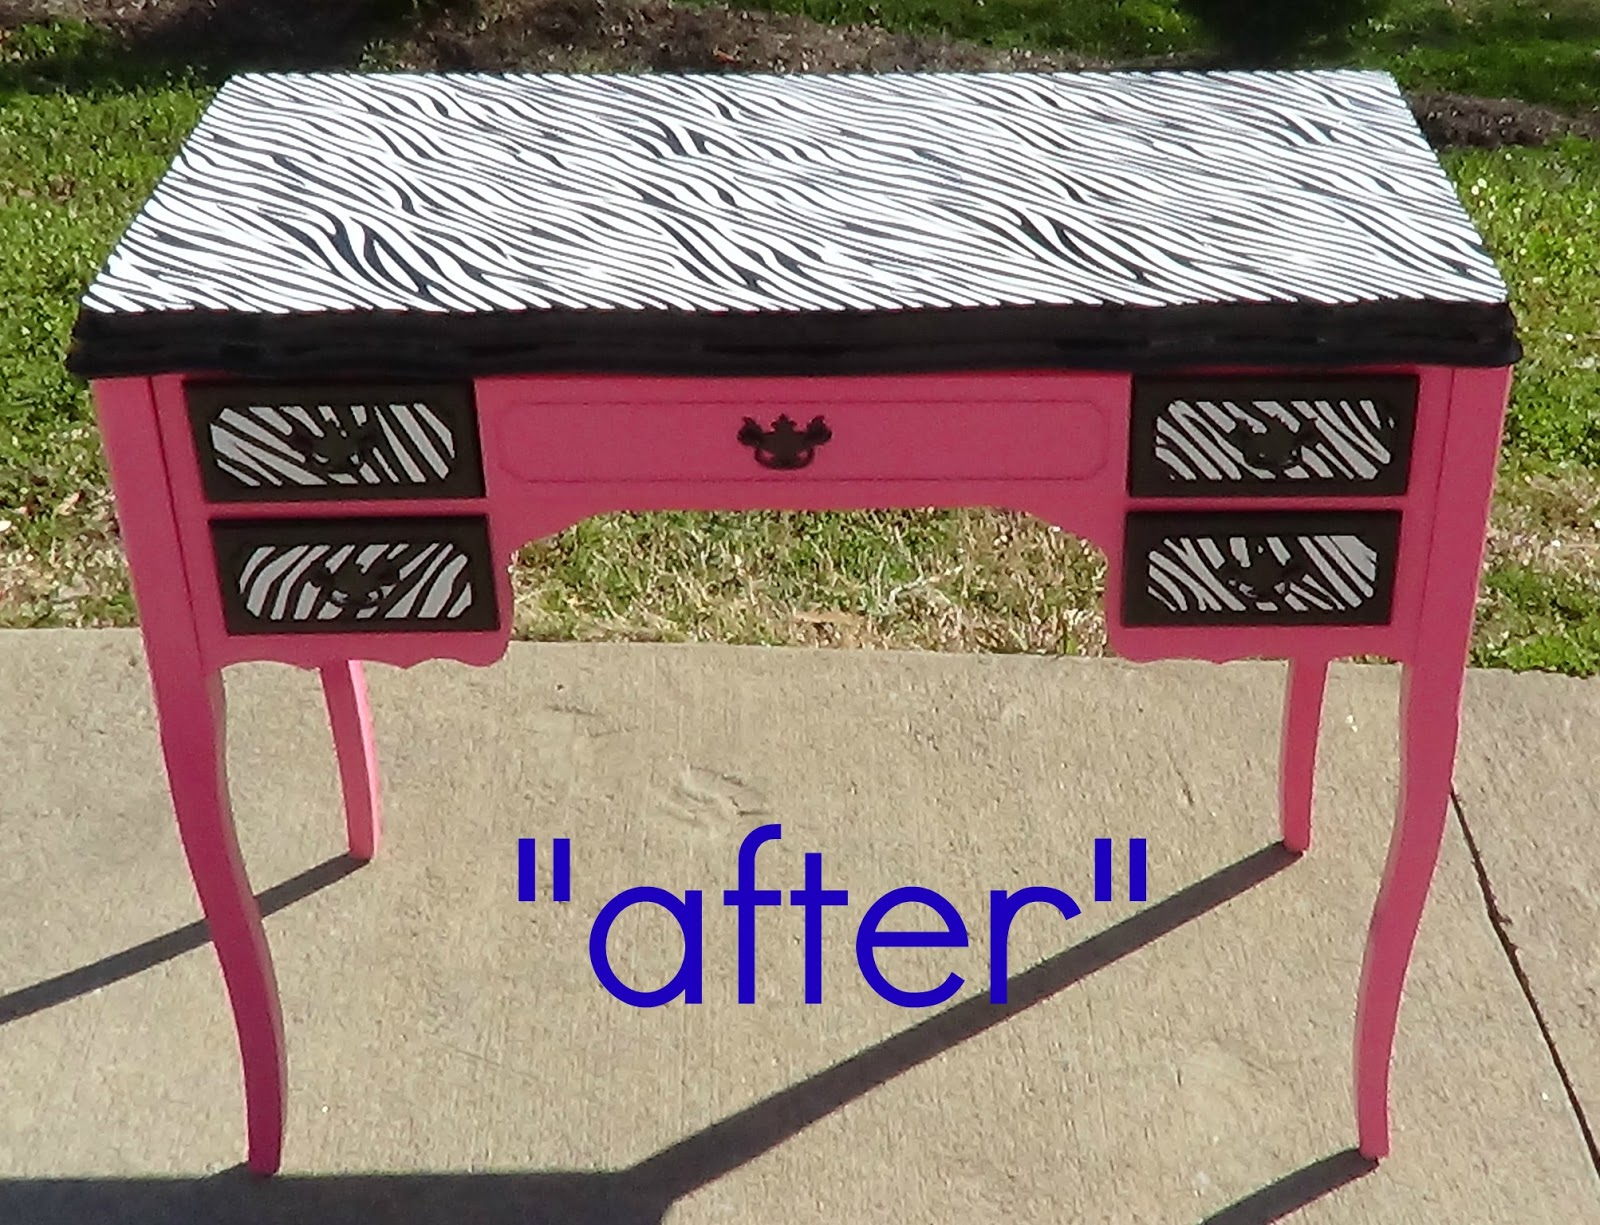 That S Not Junk Refurbished Recycled Furniture Hot Pink